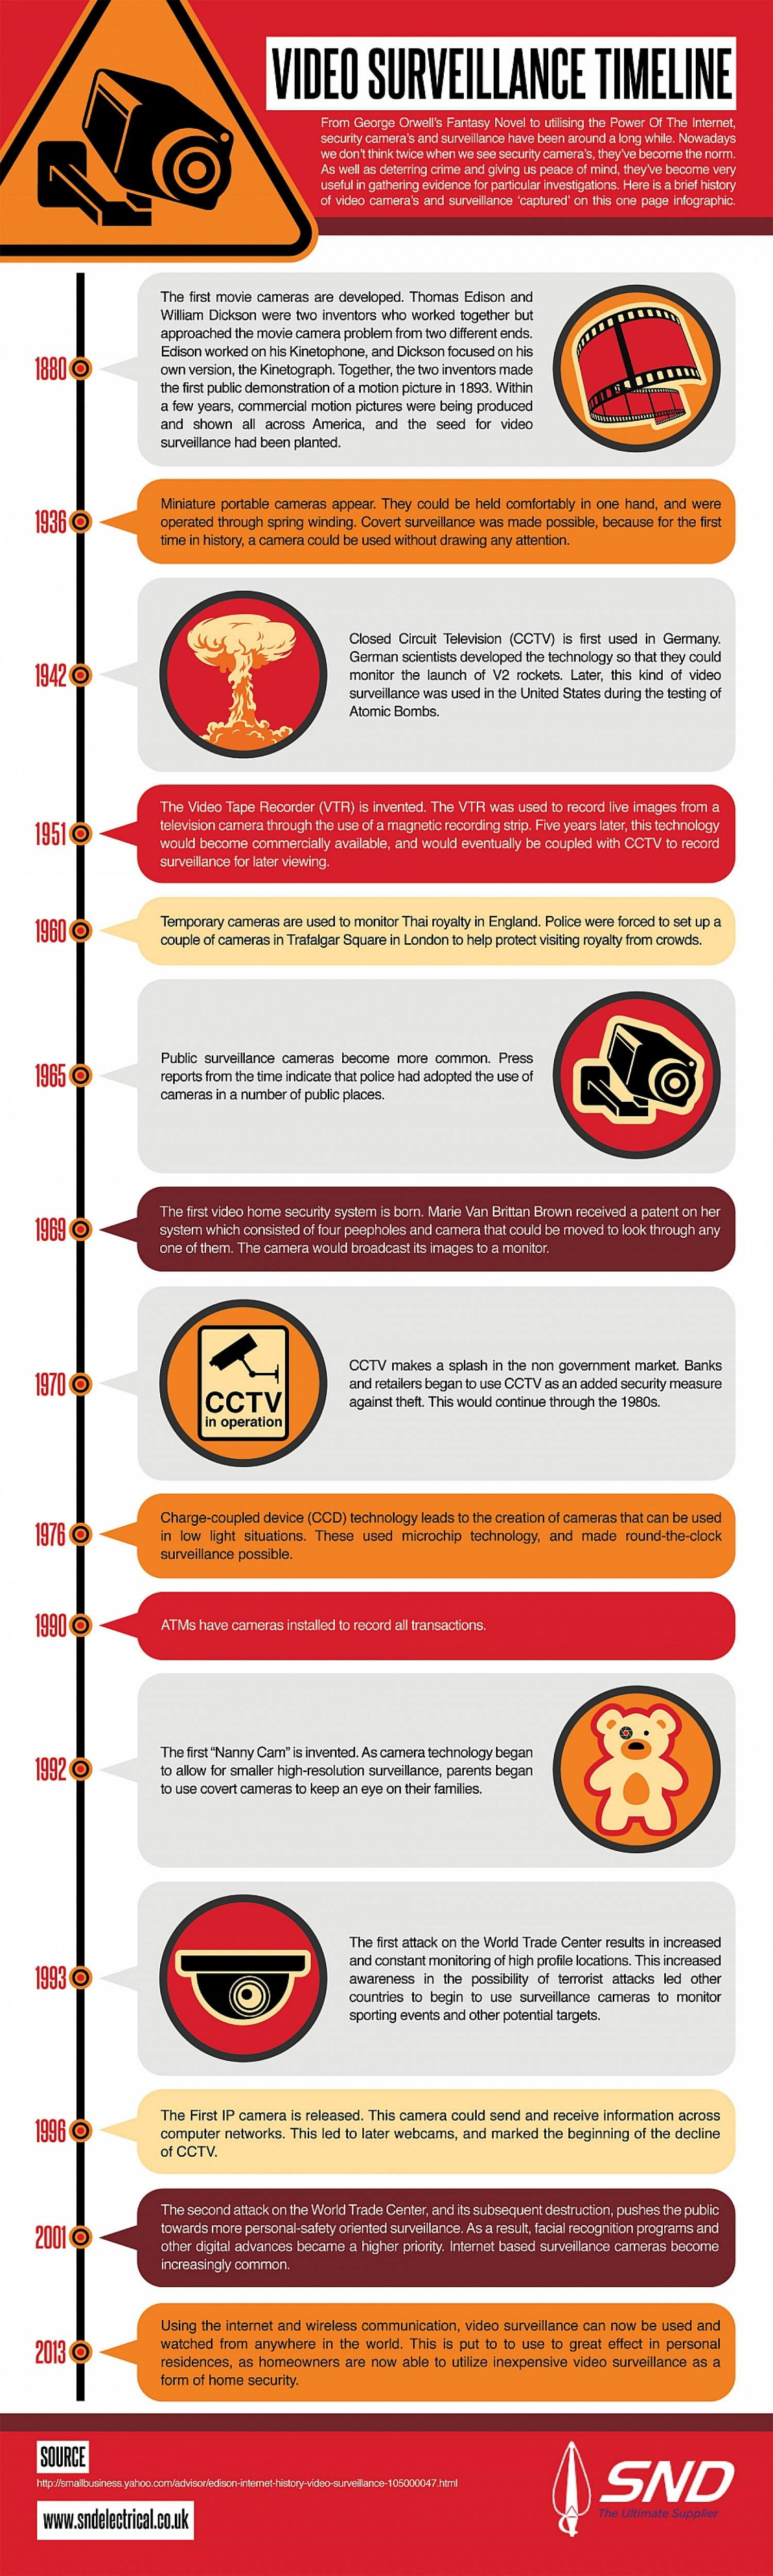 Video Surveillance Timeline Infographic